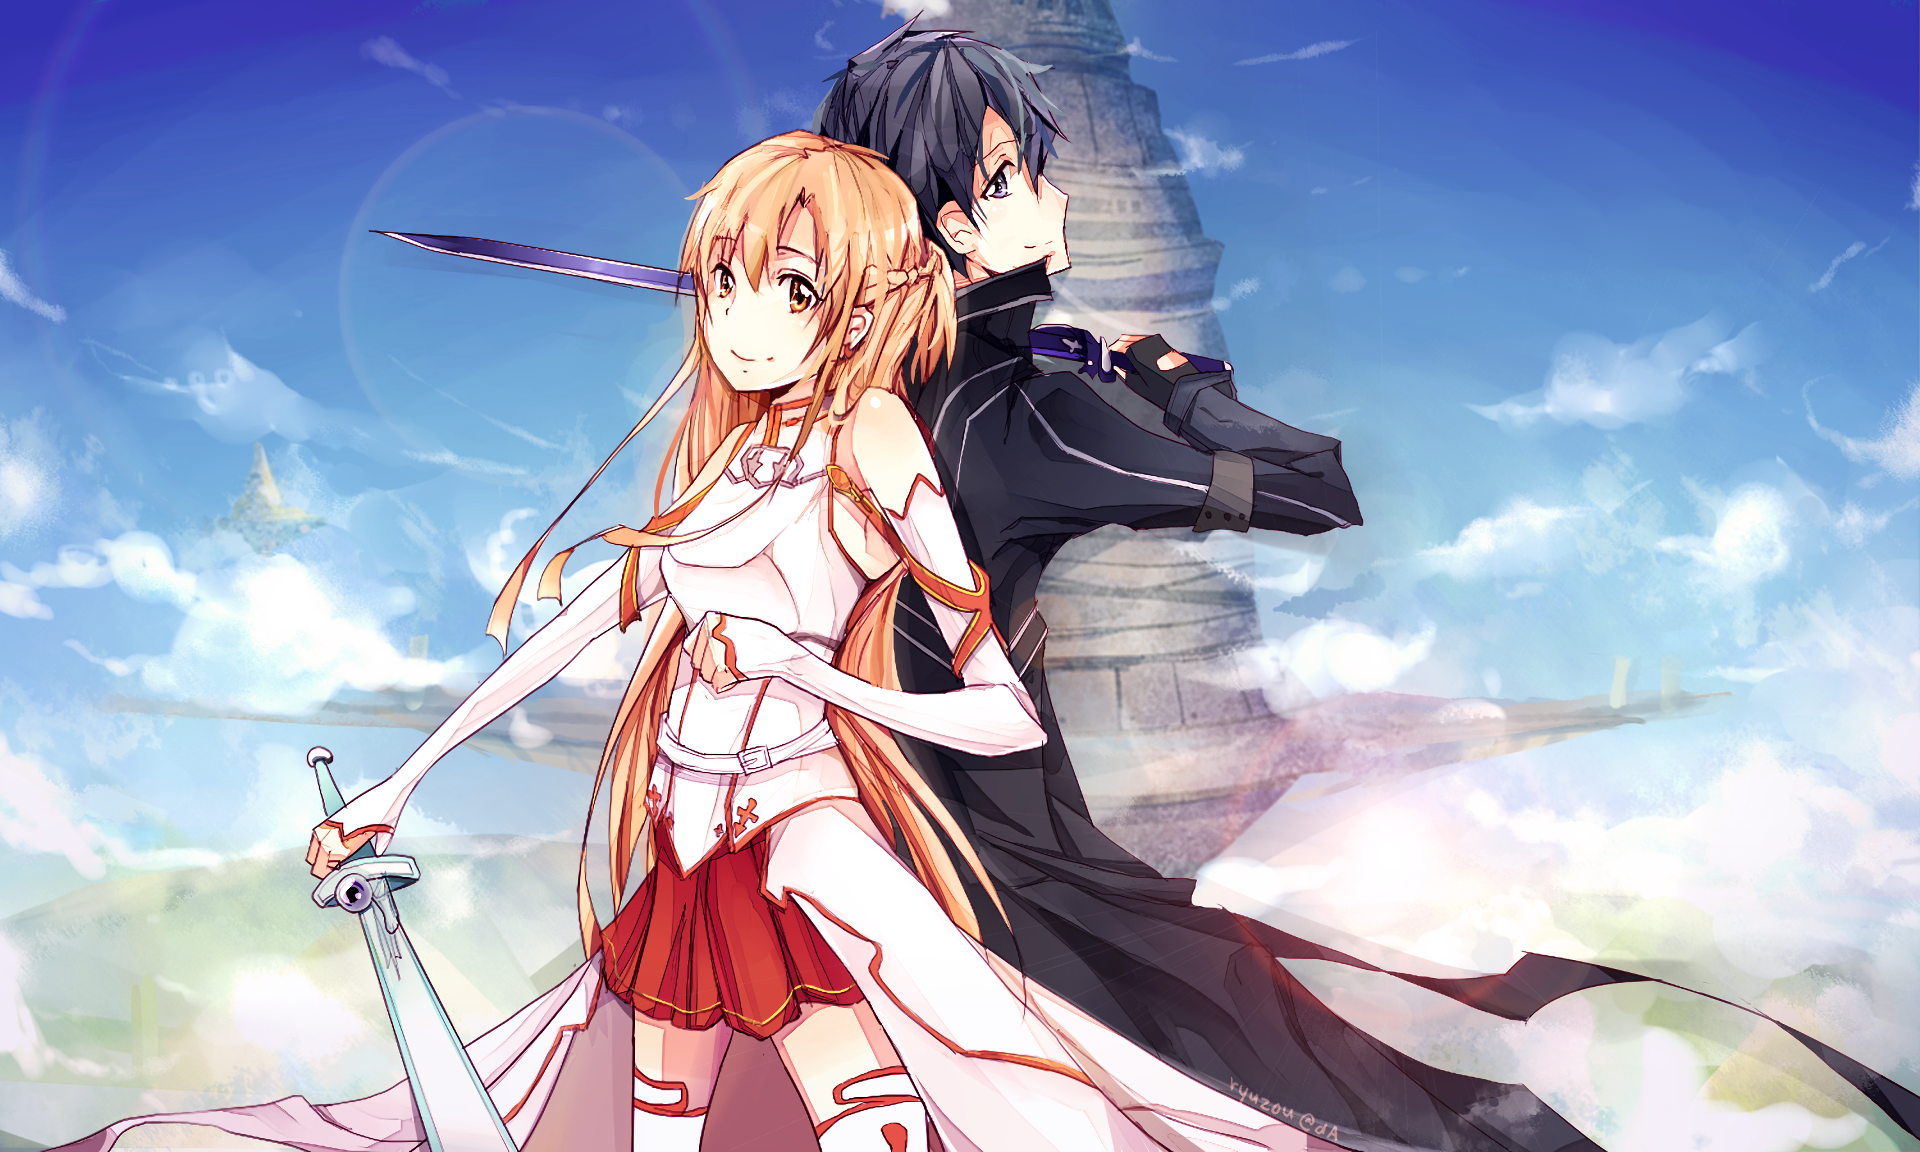 Sword Art Online Background: 1070 Kirito (Sword Art Online) HD Wallpapers